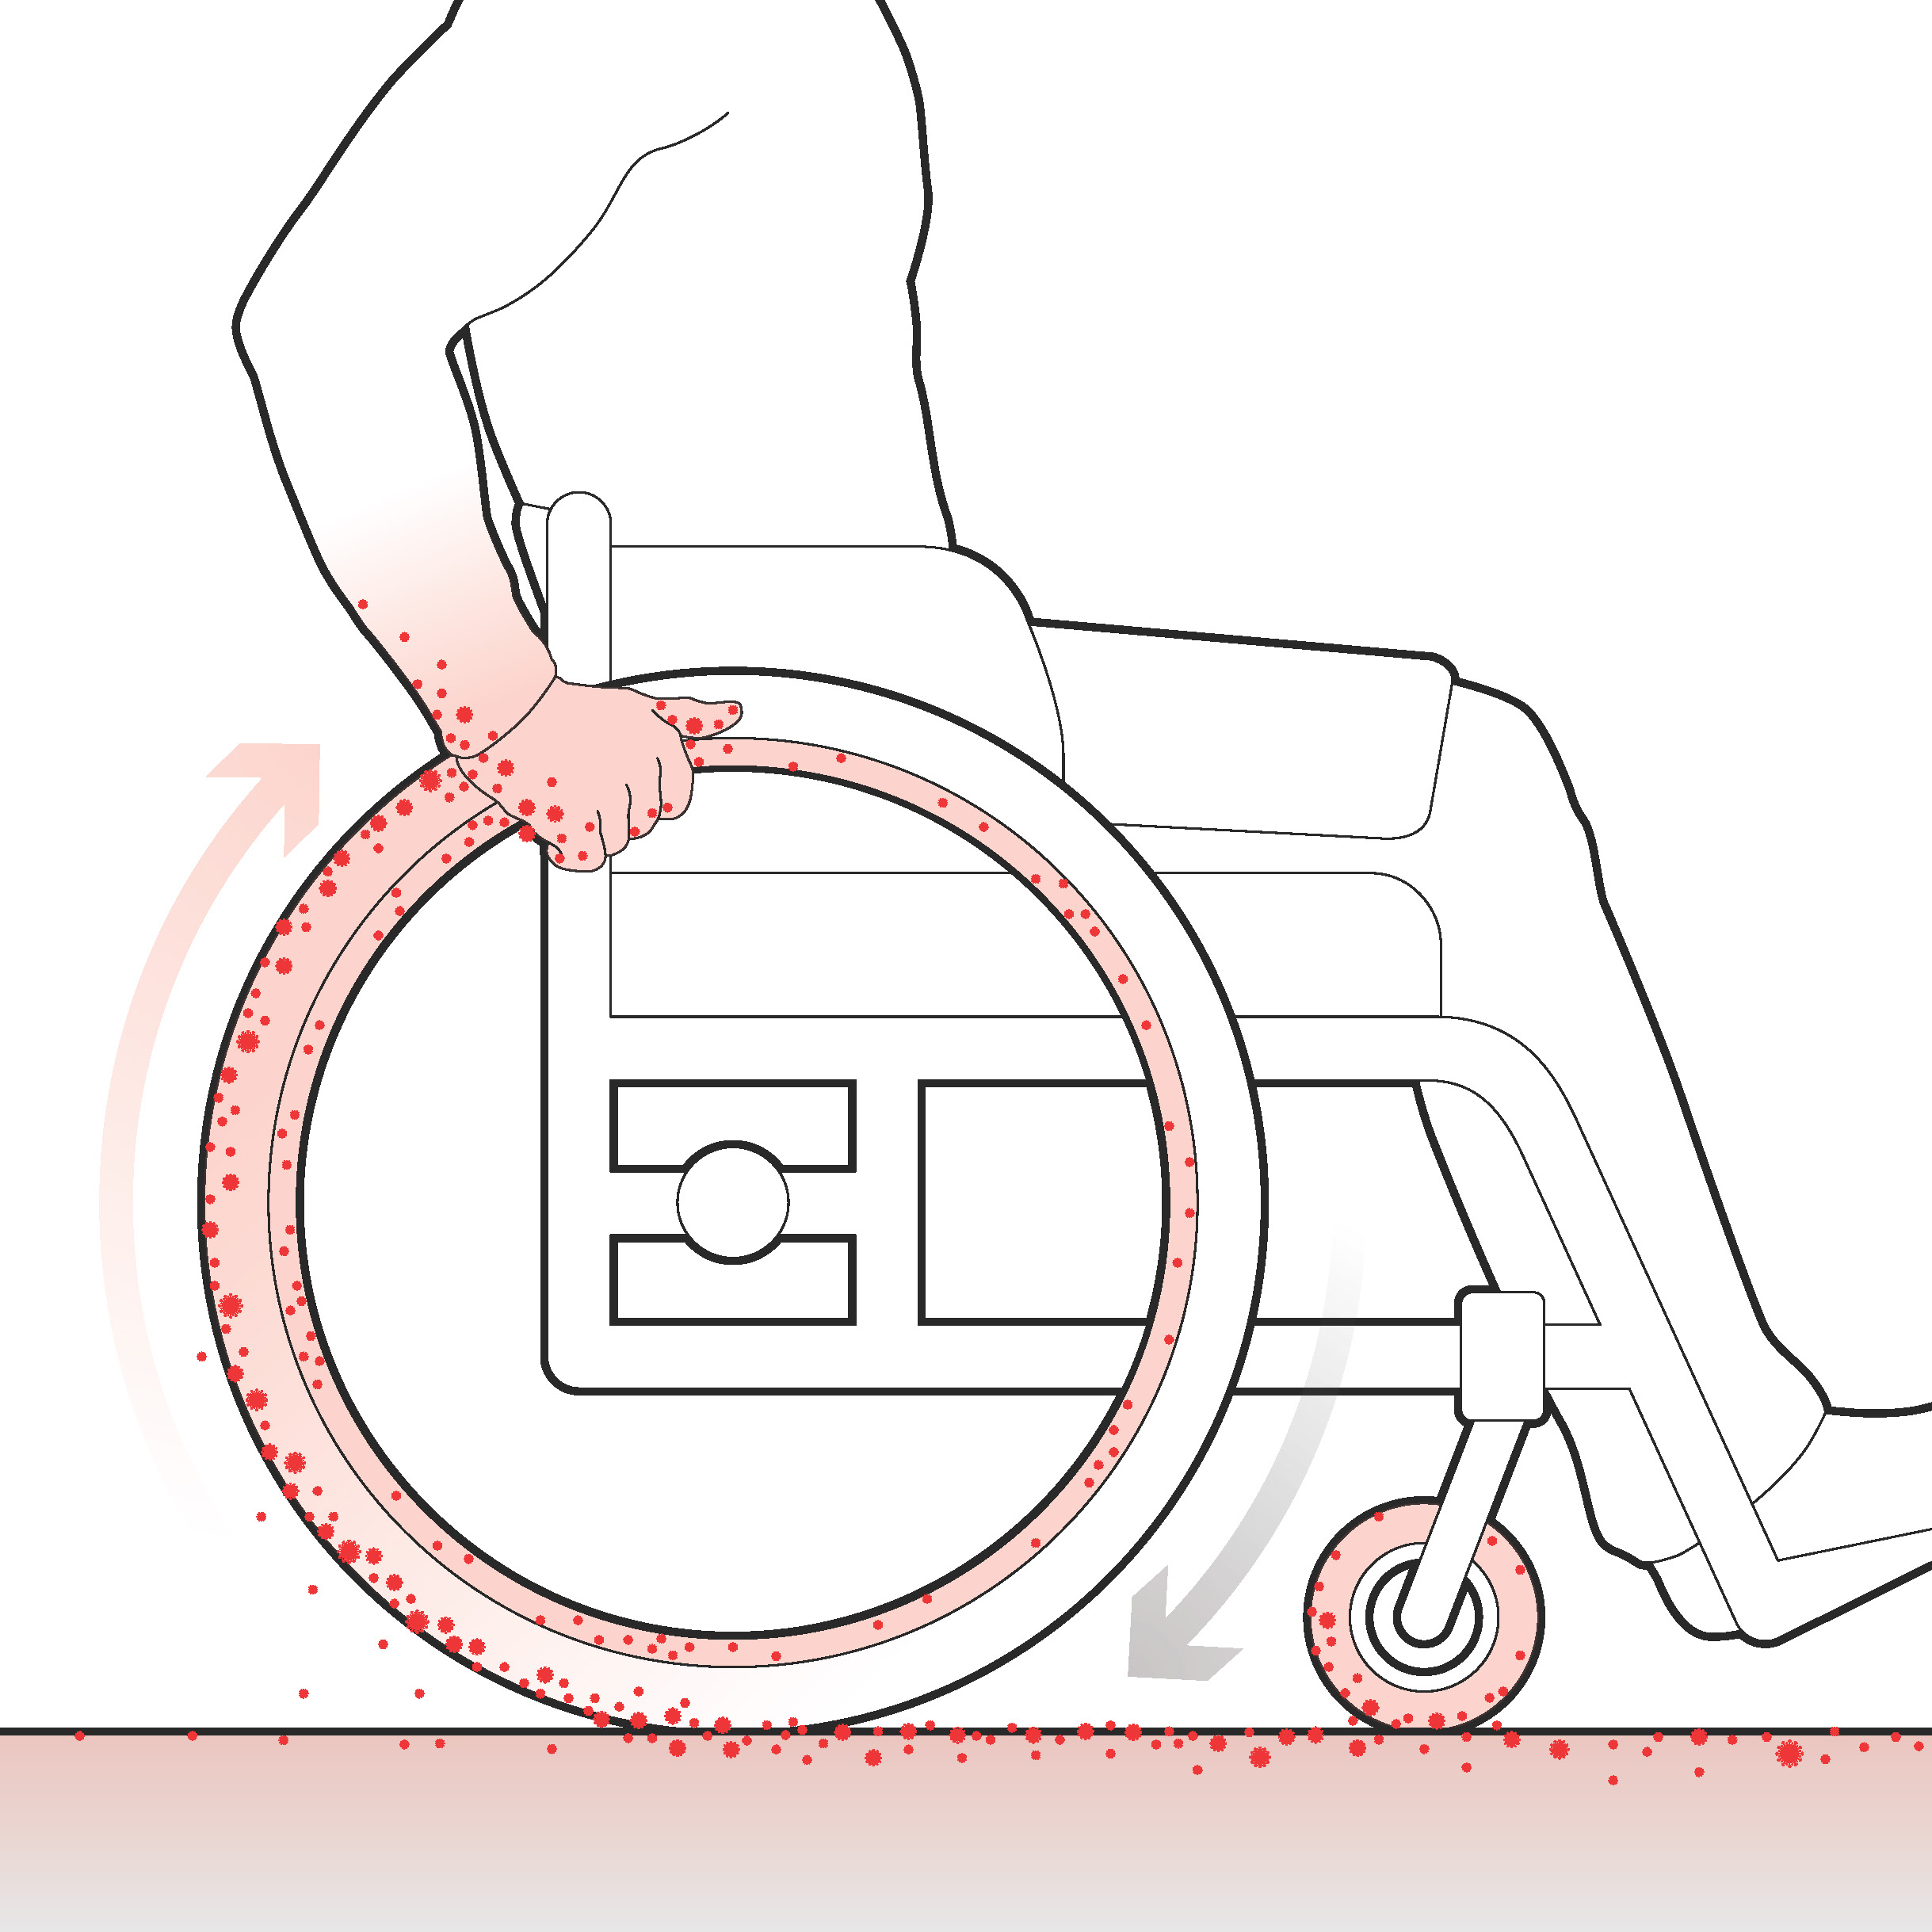 Virus is picked up from wheels and transfers to hands and handrims